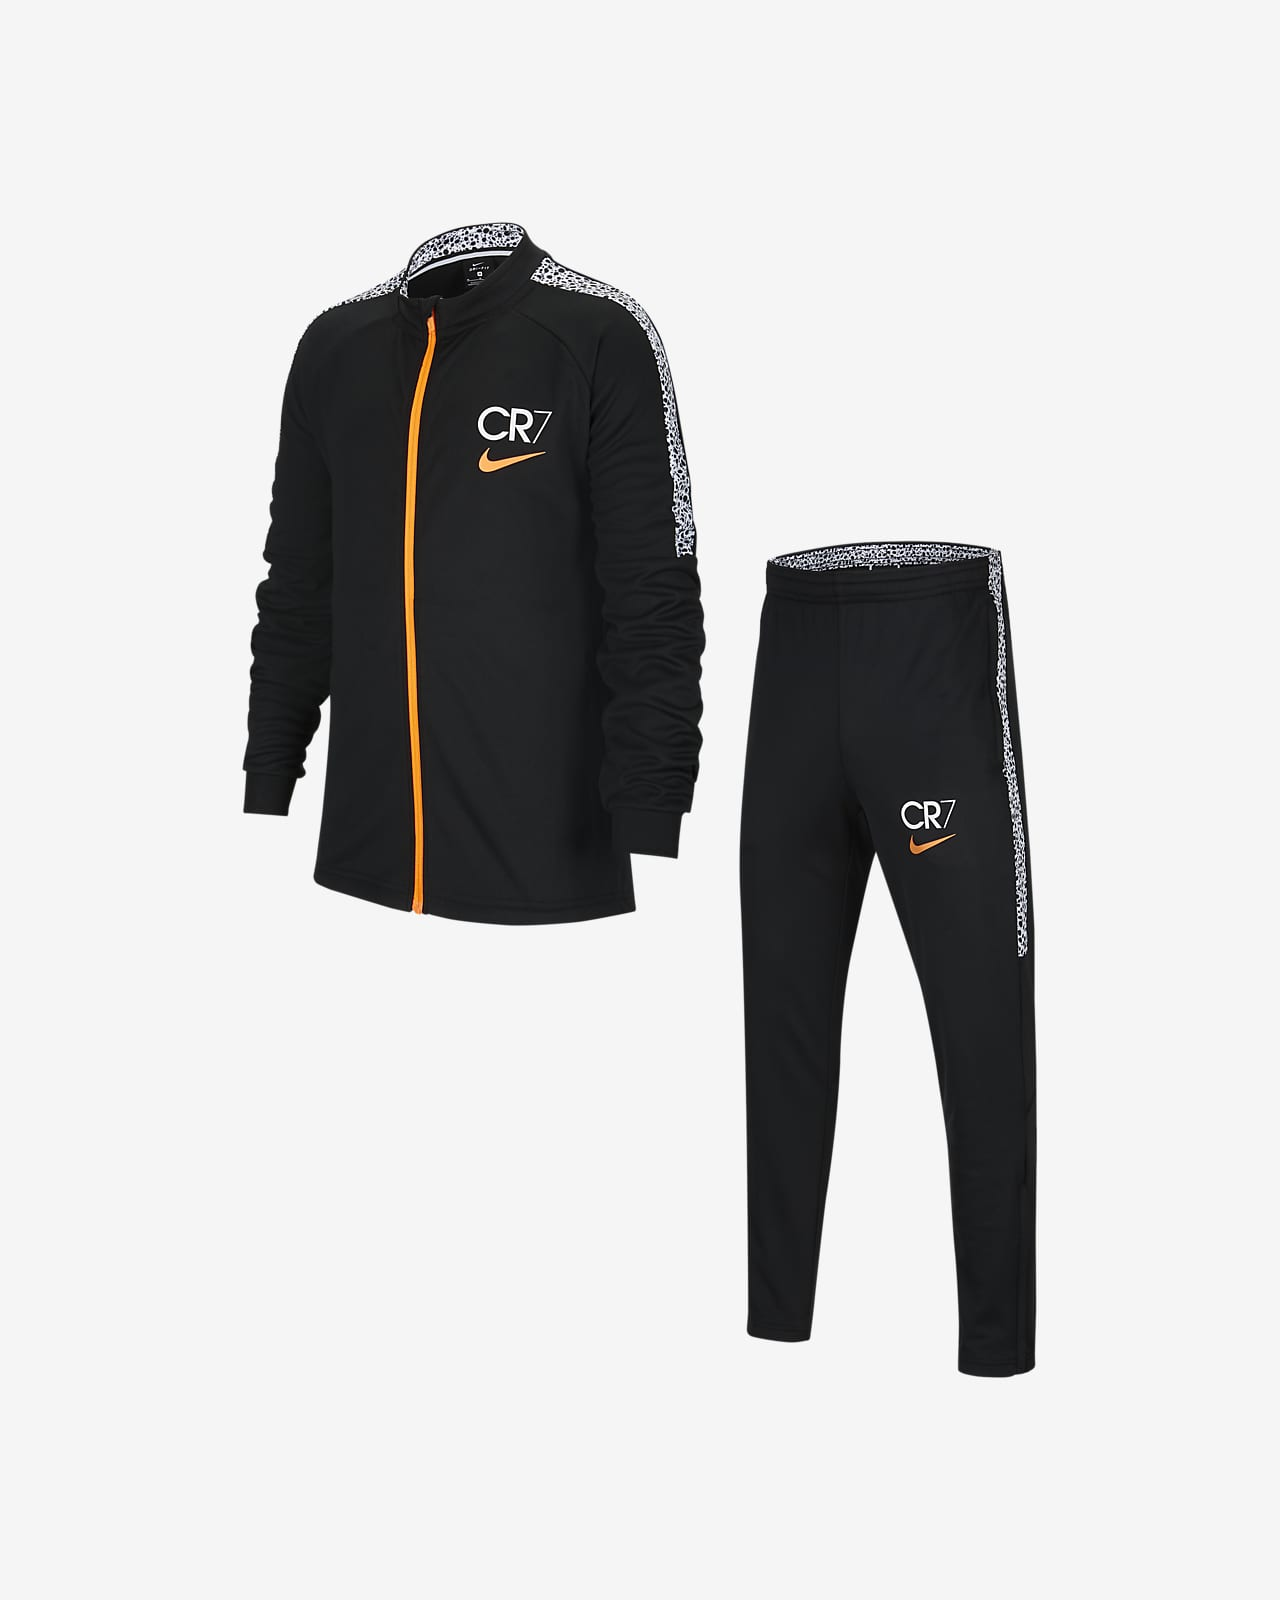 Nike Dri-FIT CR7 Older Kids' Knit Football Tracksuit